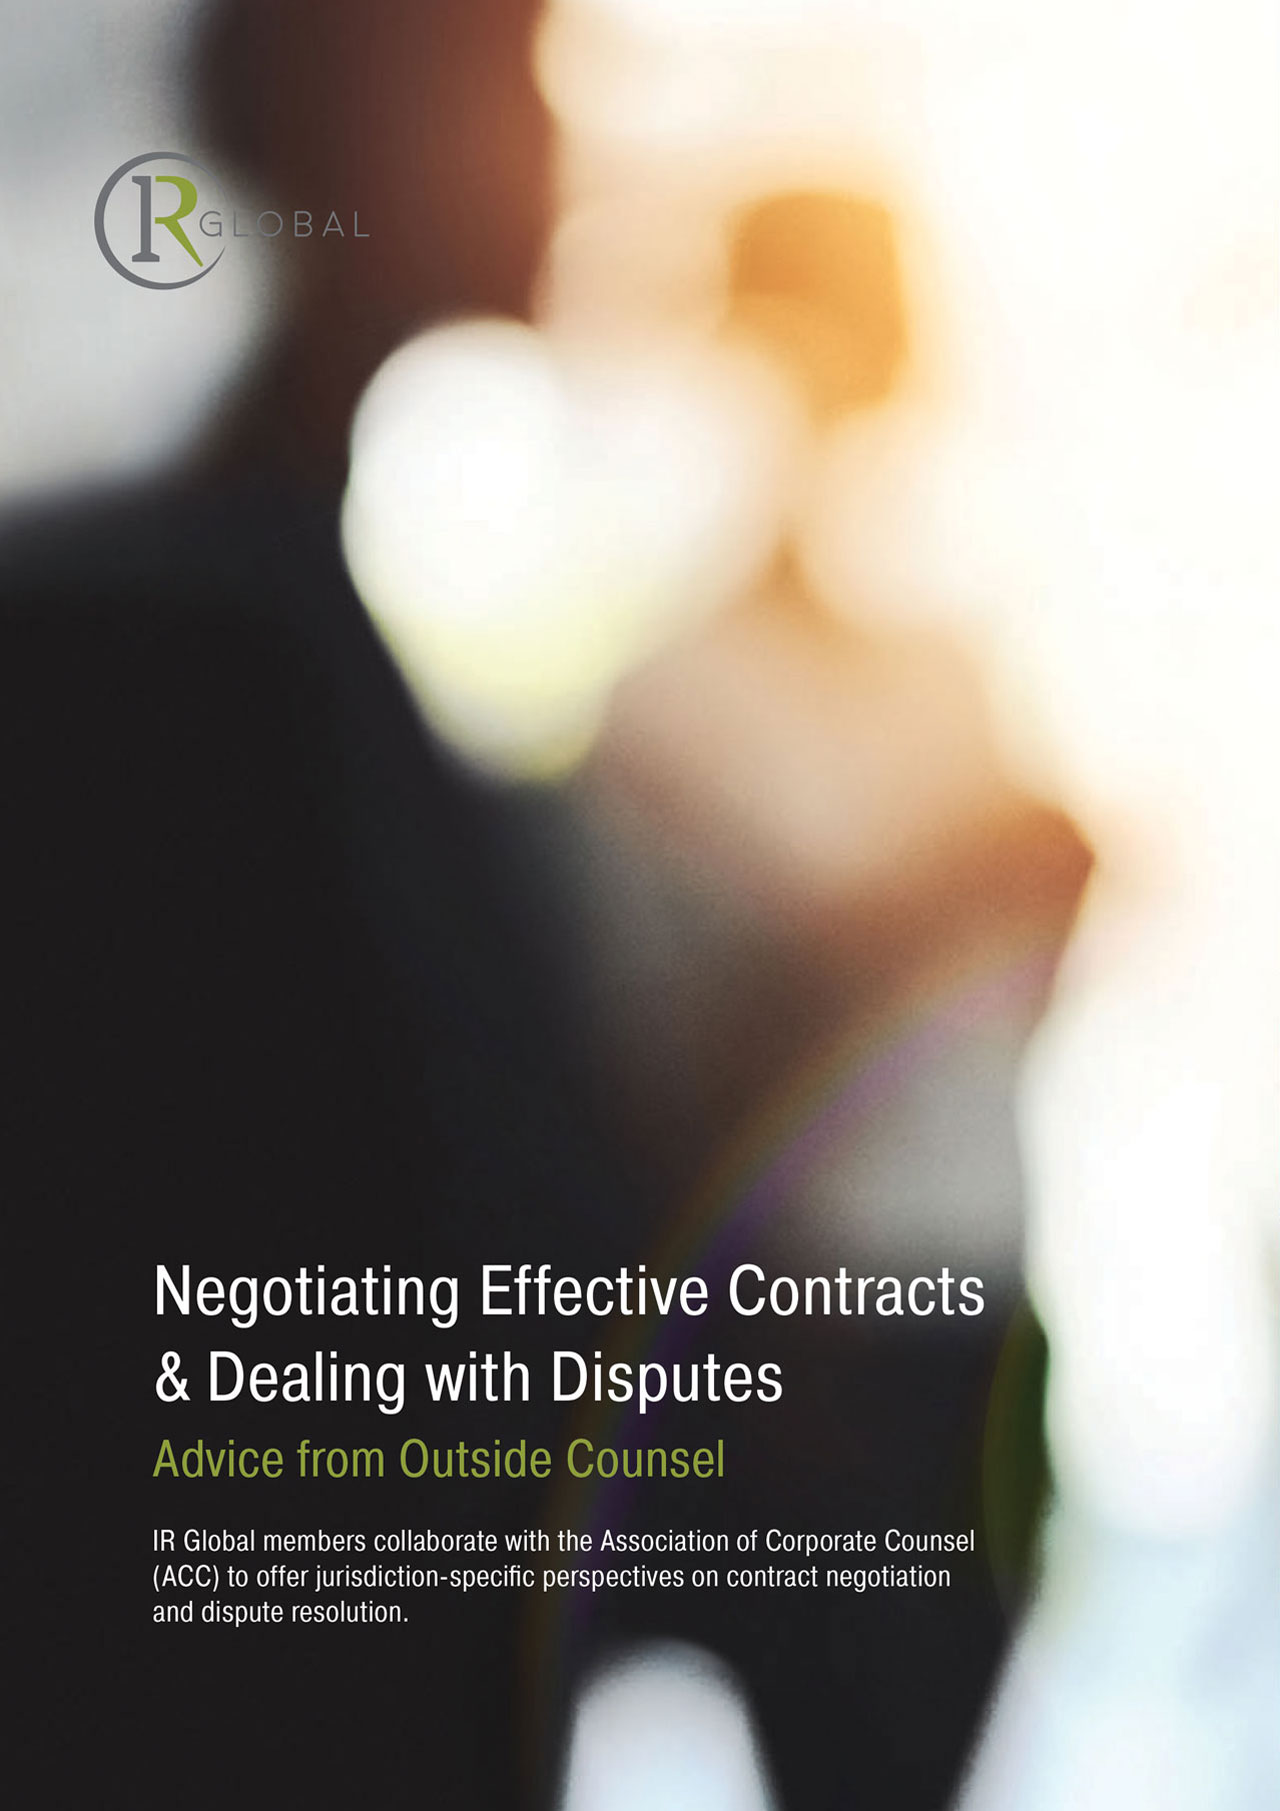 Negotiating Effective Contracts & Dealing with Disputes Publication